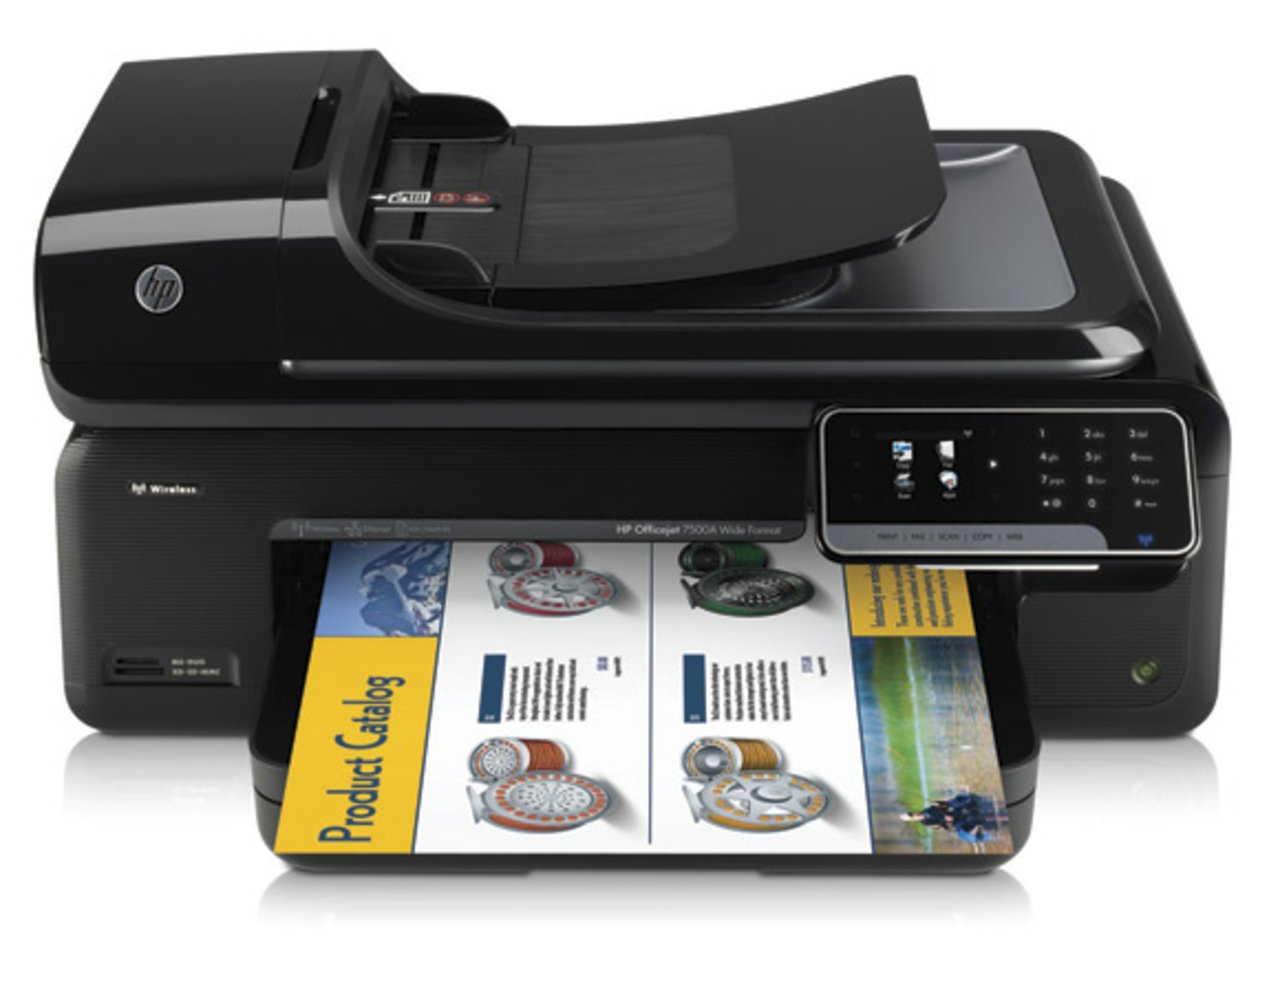 HP Officejet 7500A e-All-in-One Tintenstrahl